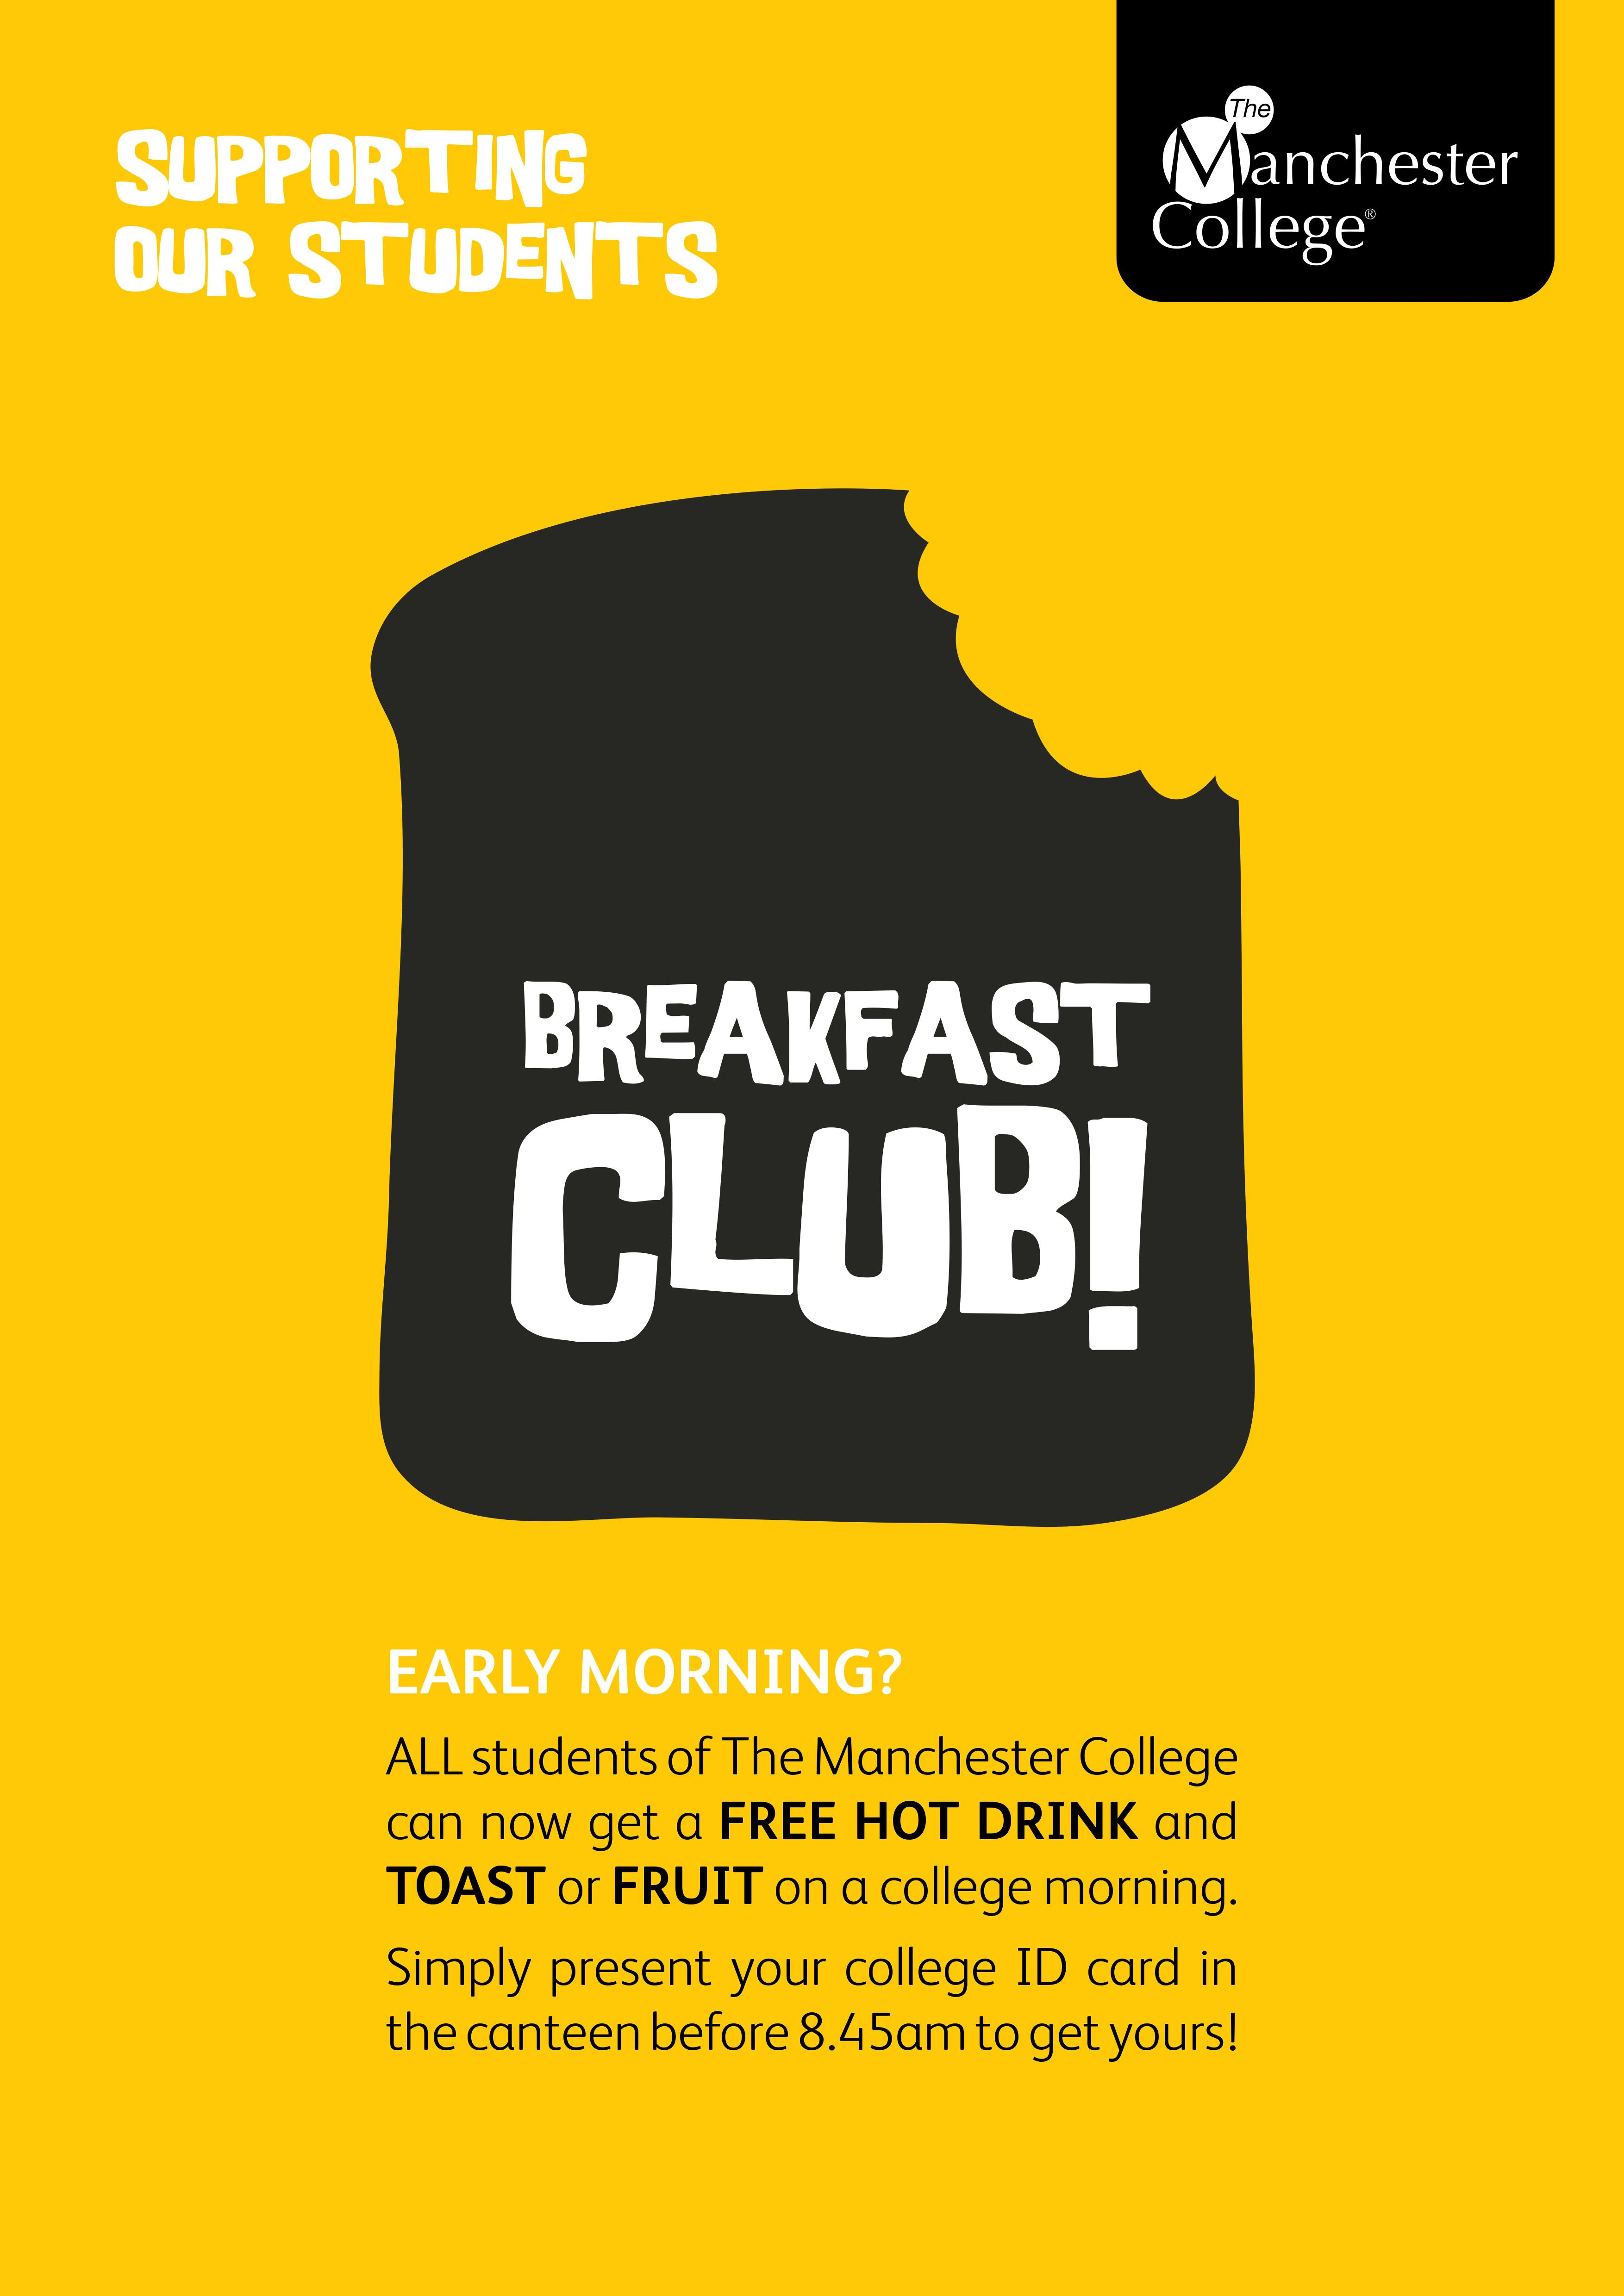 Poster design for students - Breakfast Club Poster Part Of A Suite Of Posters For Student Support Created By